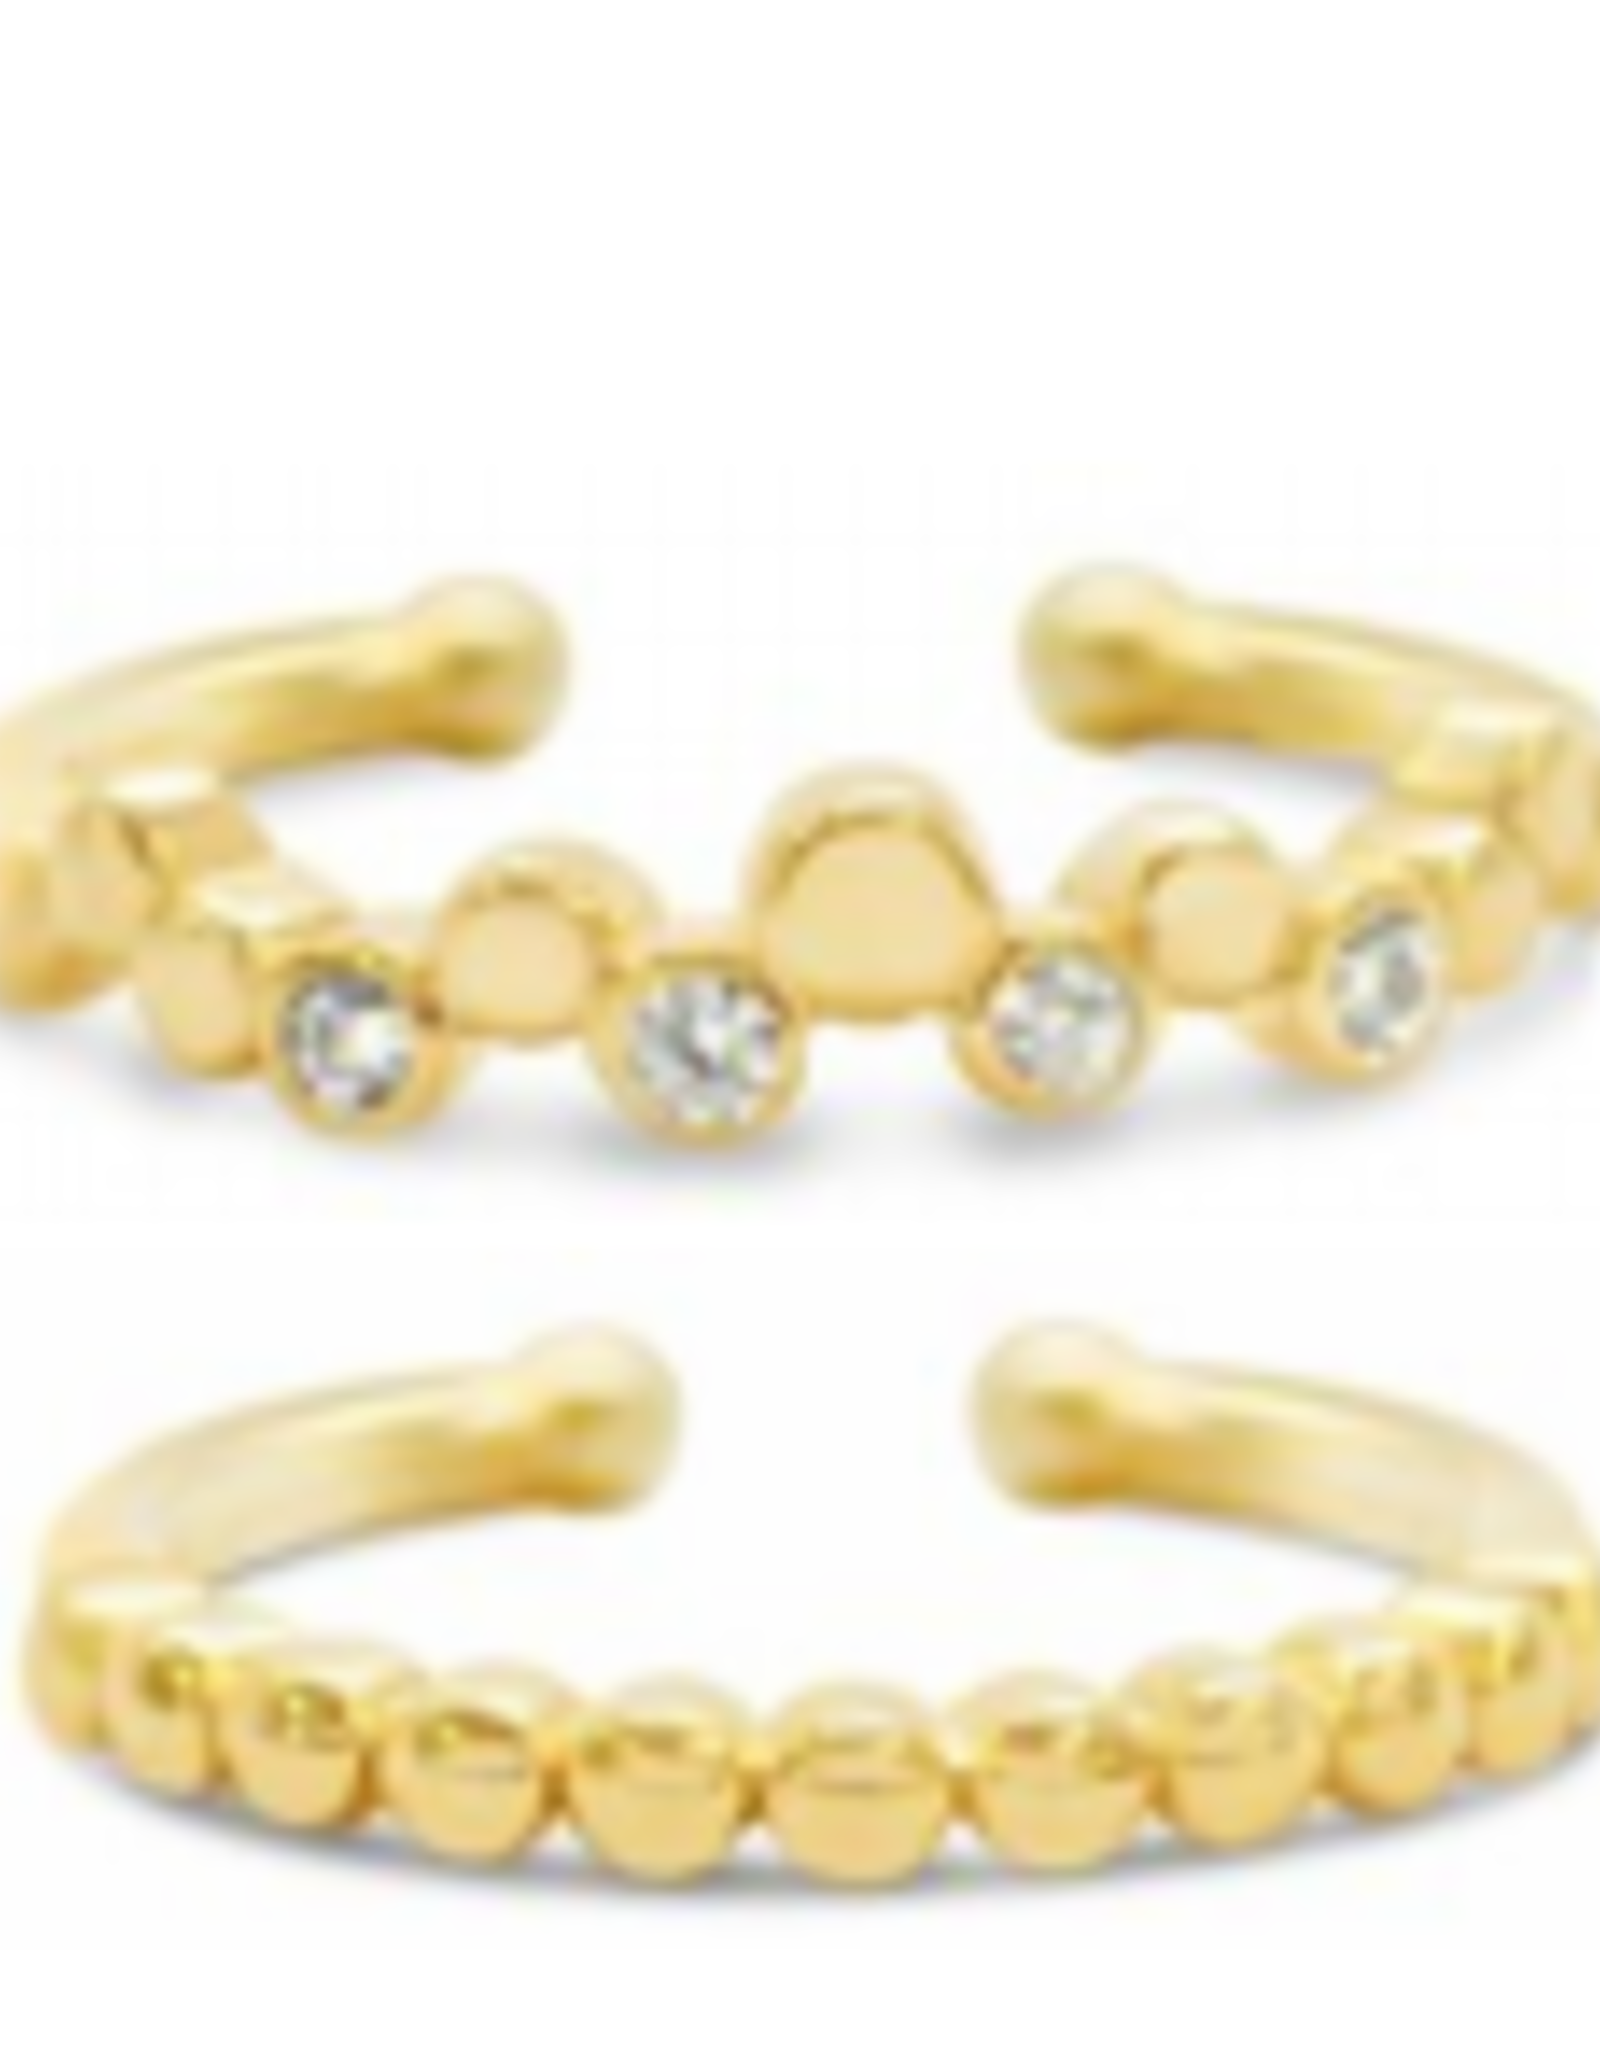 Stia Jewelry Stacking Rings, Simple Gold